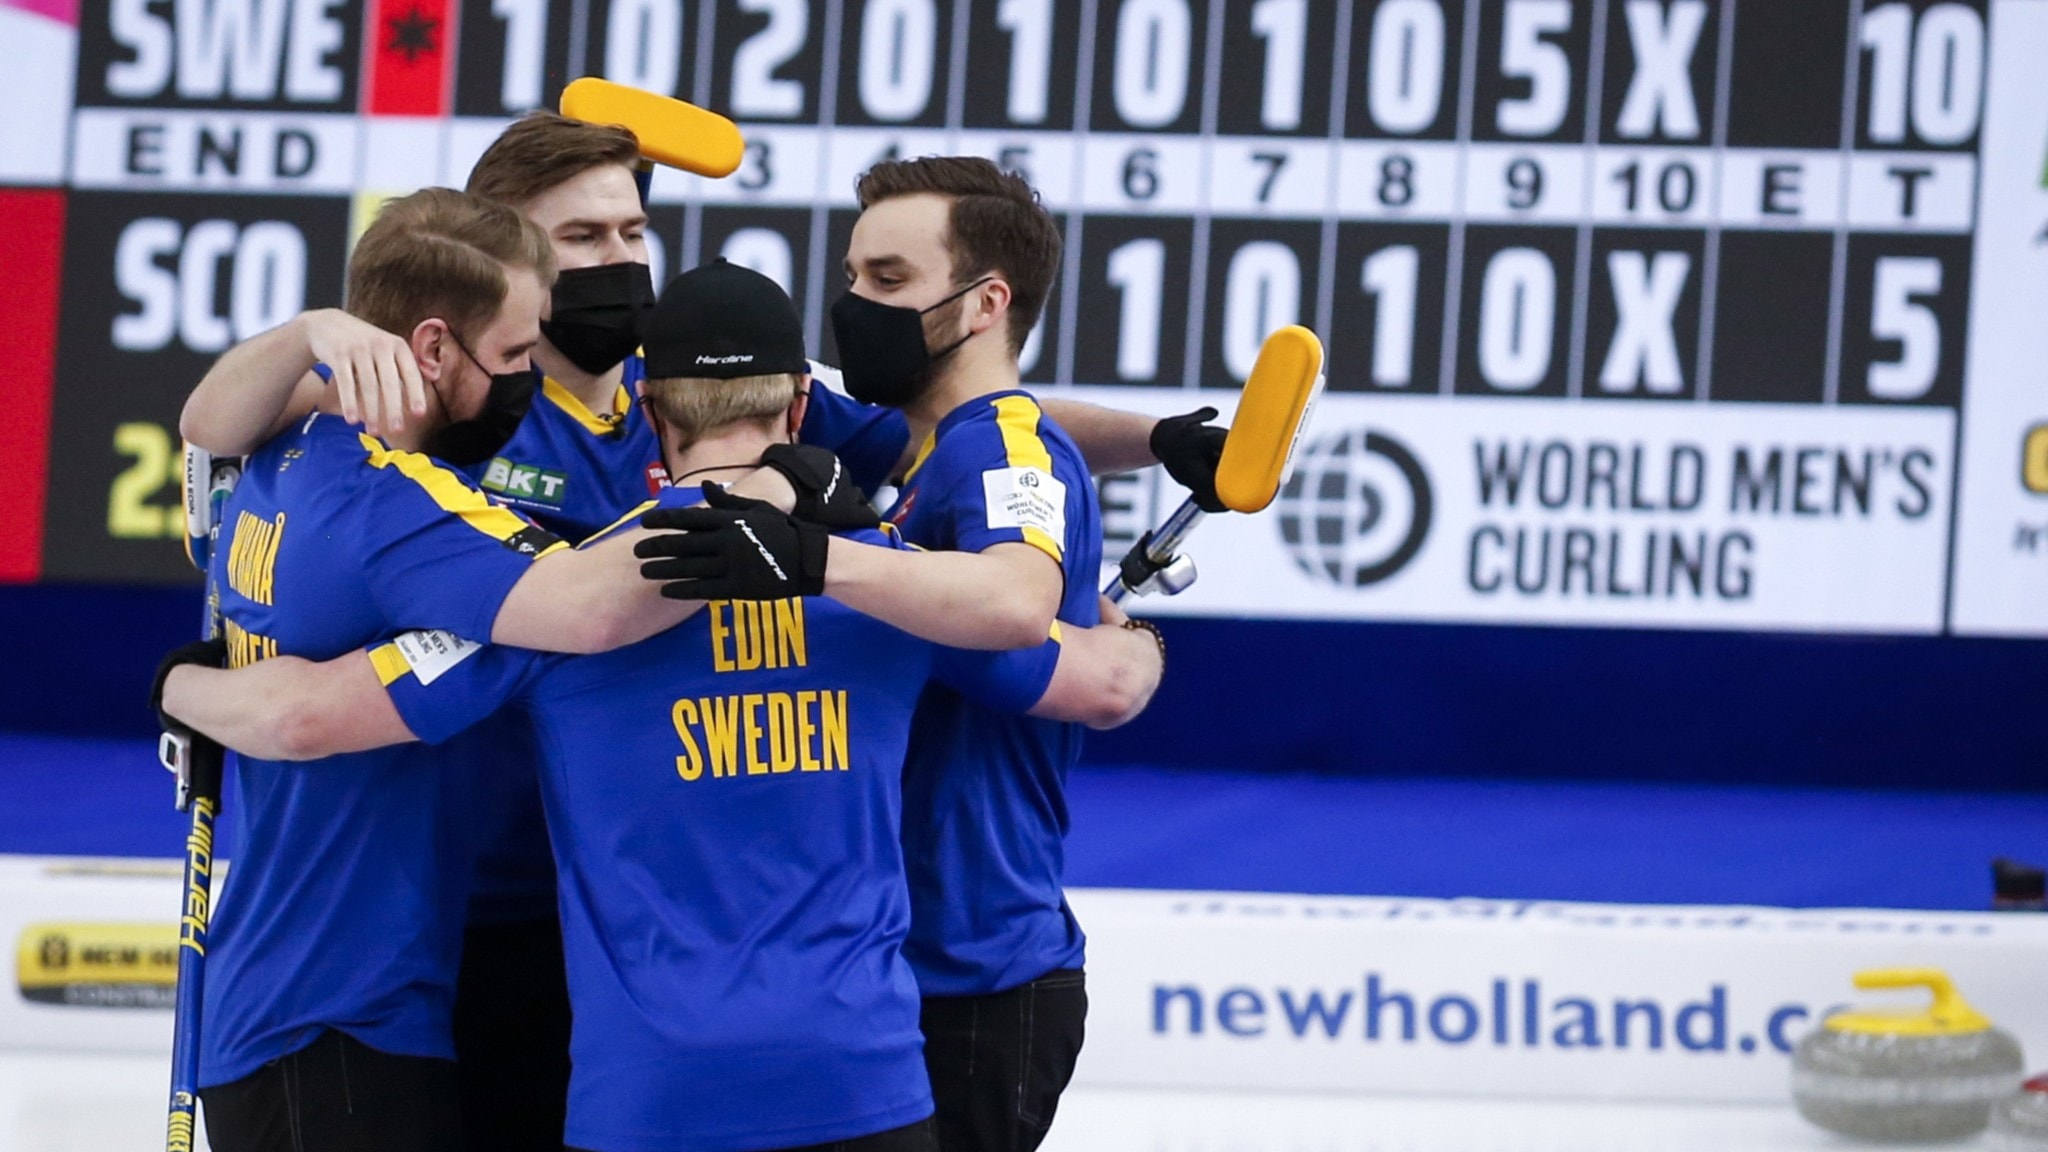 Four members of Sweden's men's team in curling, dressed in blue jerseys, celebrating with their arms around one another.